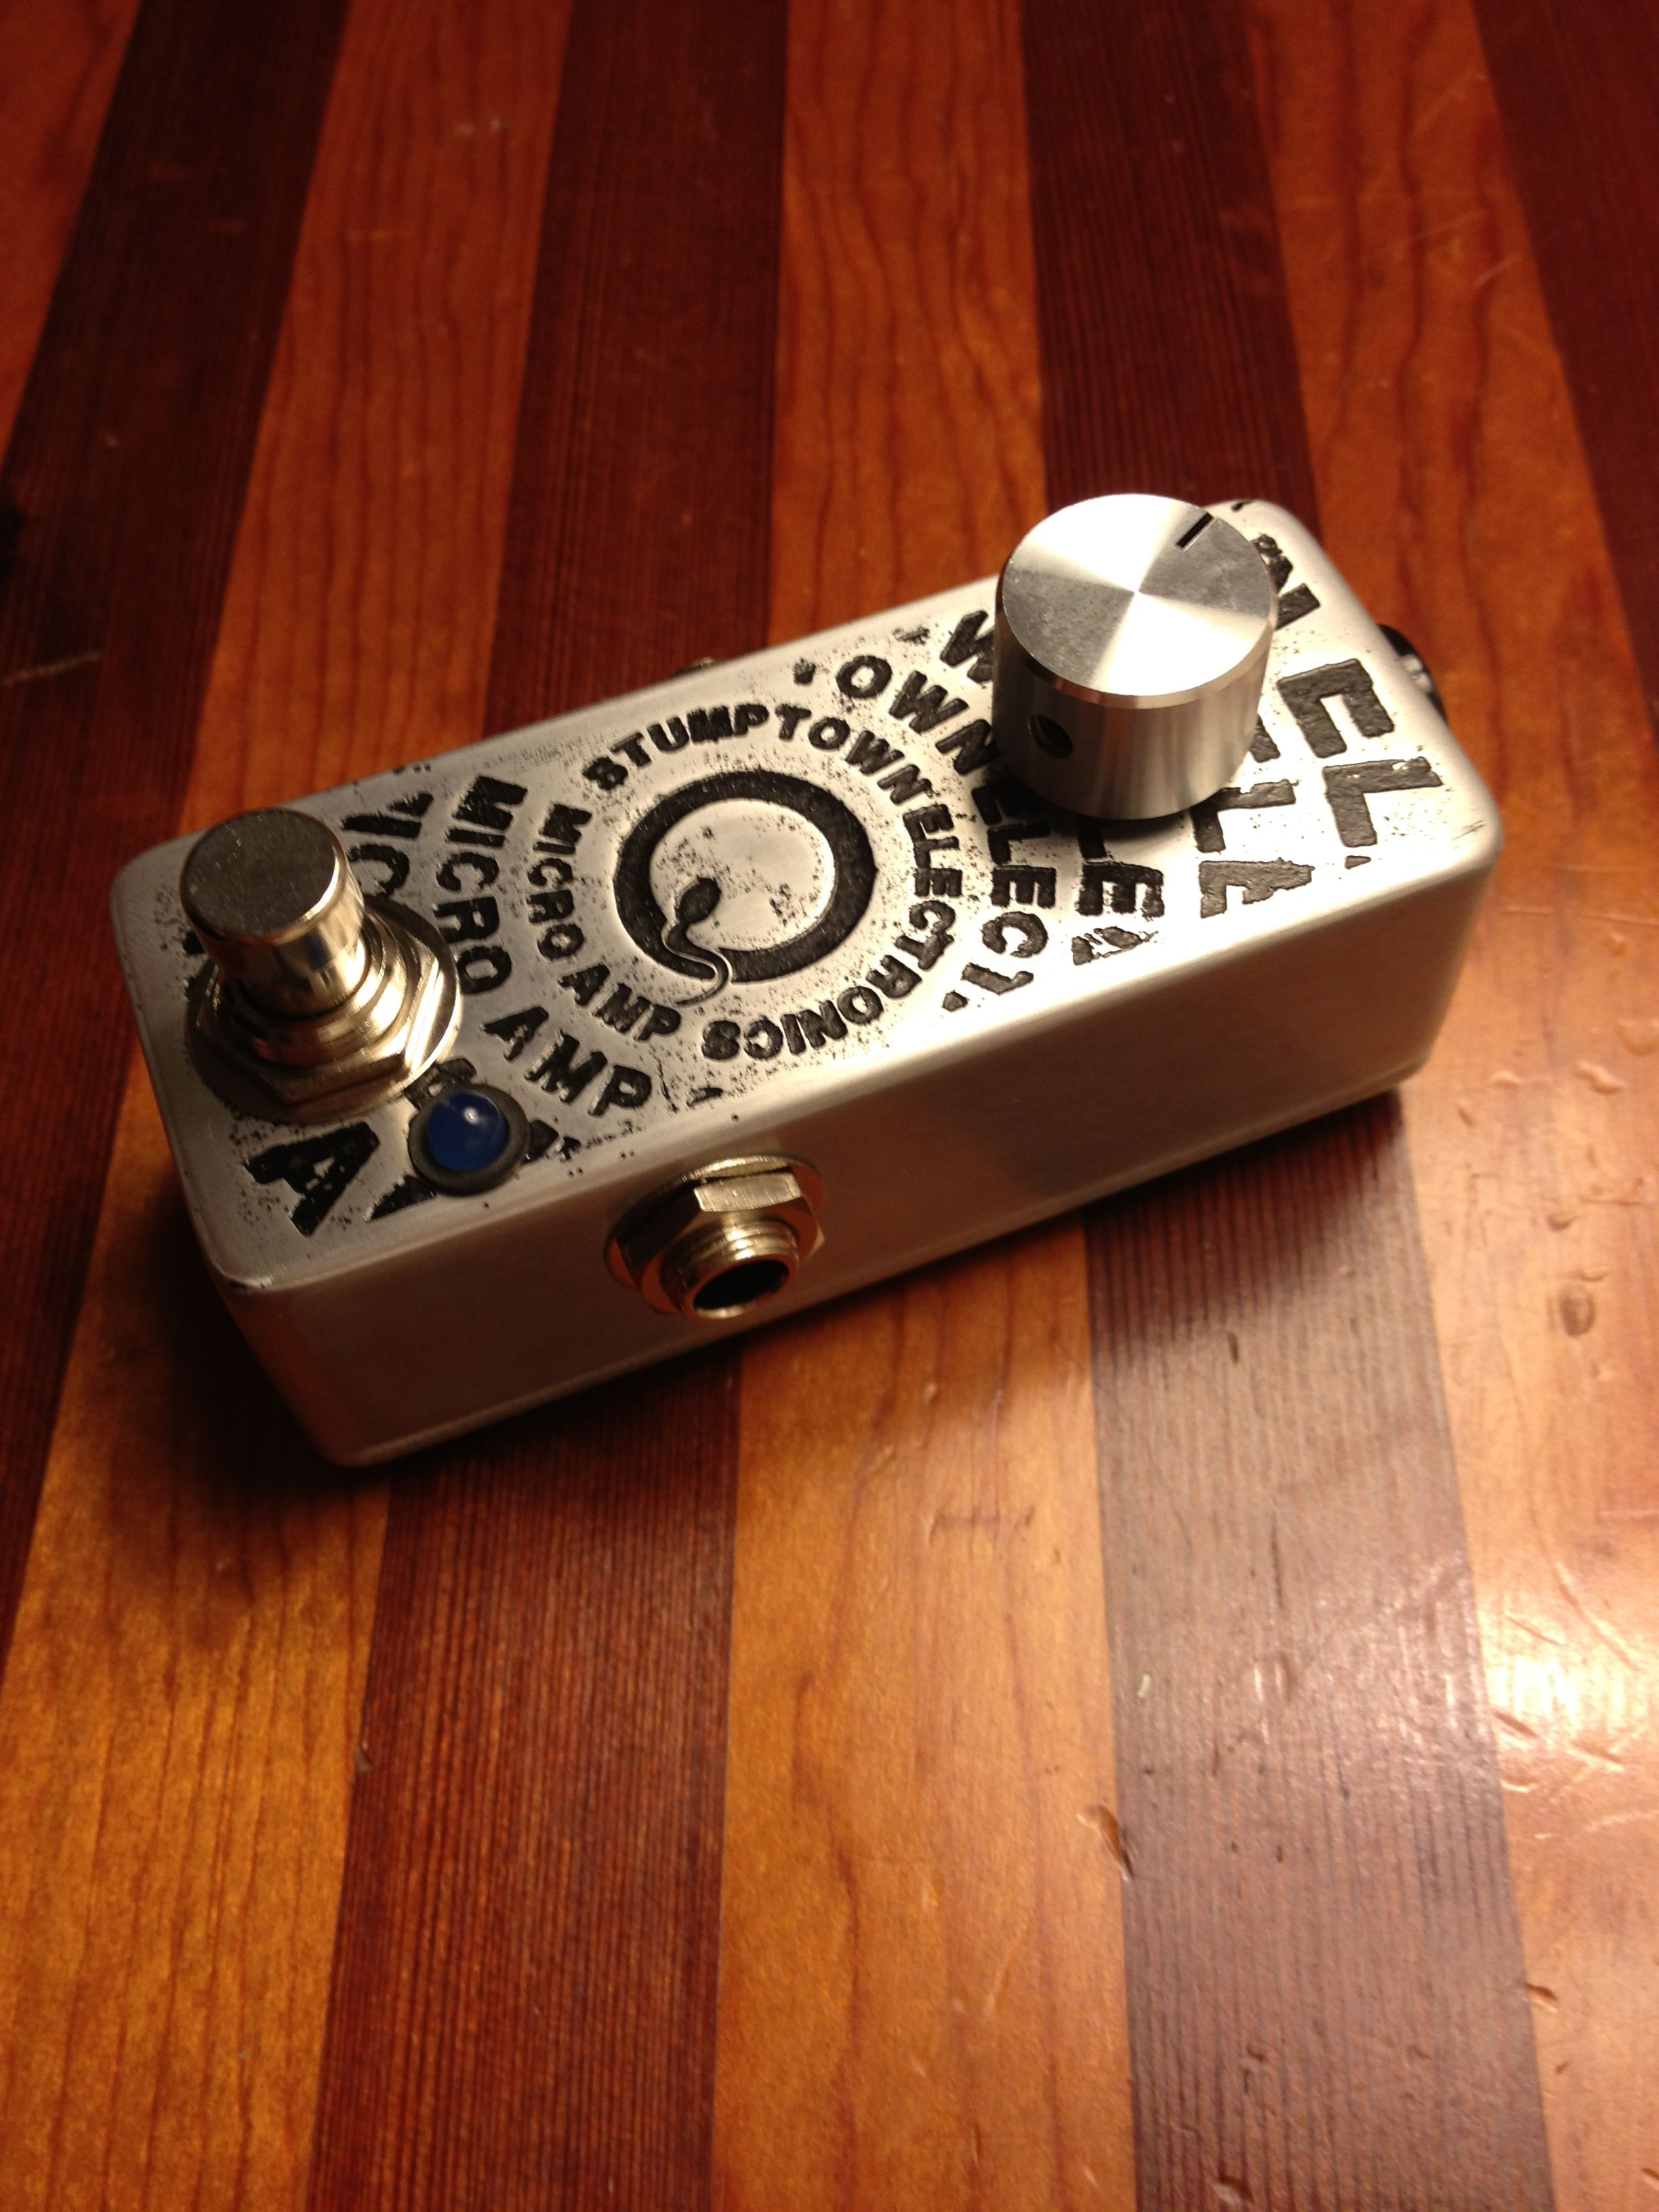 diy guitar pedal with acid etched graphics diy guitar pedals diy guitar pedal guitar. Black Bedroom Furniture Sets. Home Design Ideas